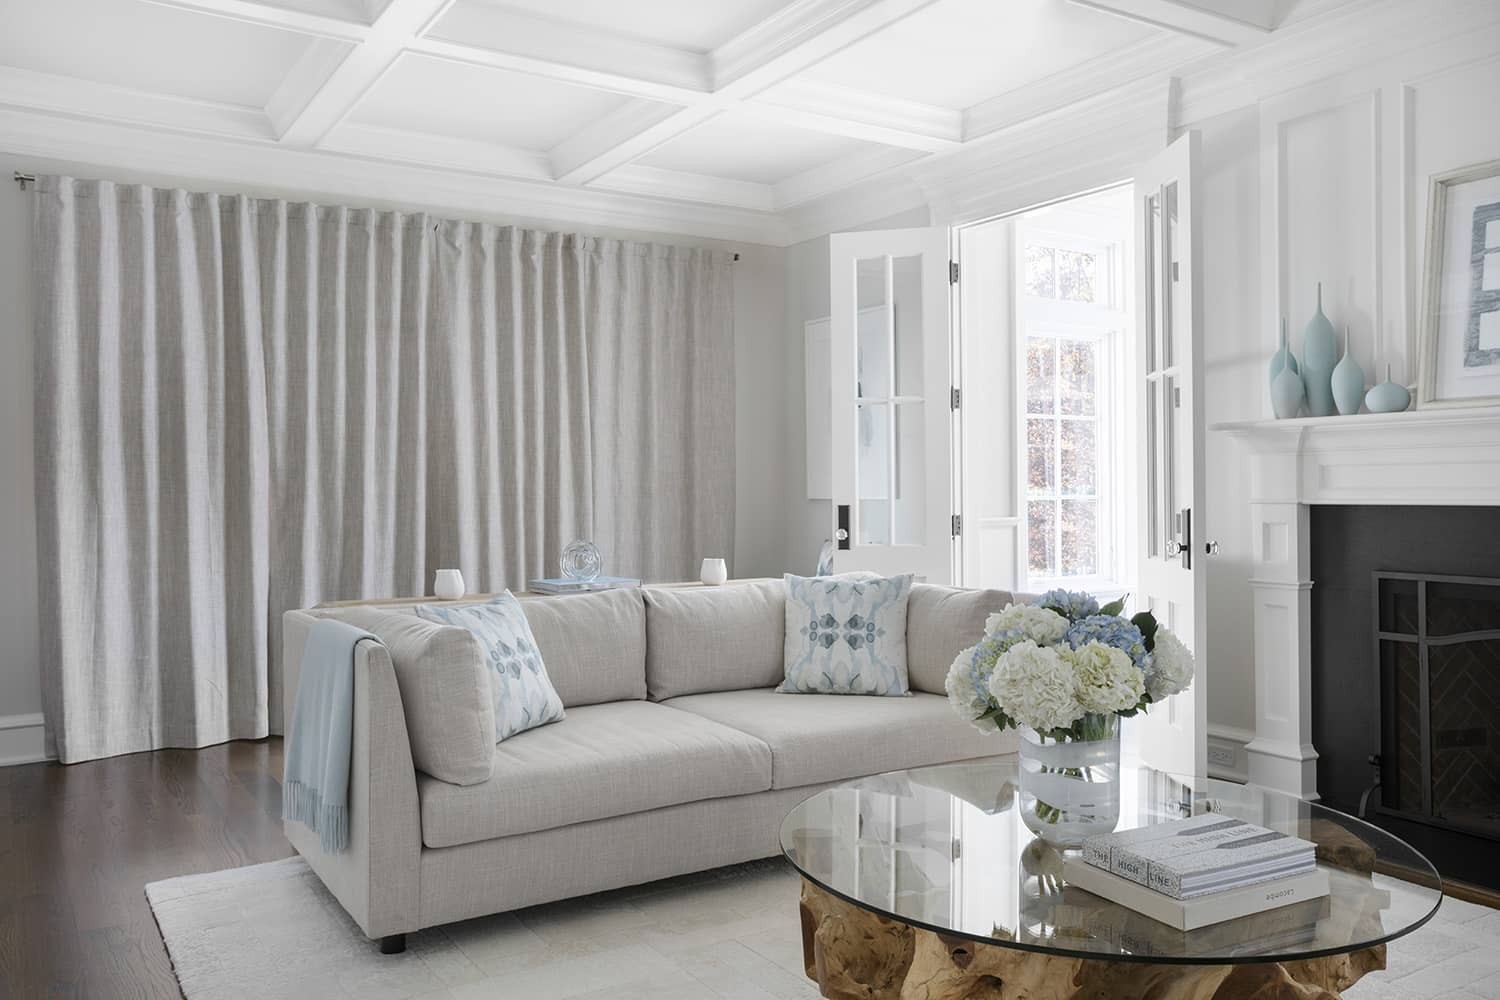 Modern living room showcasing drapery with blackout liner.